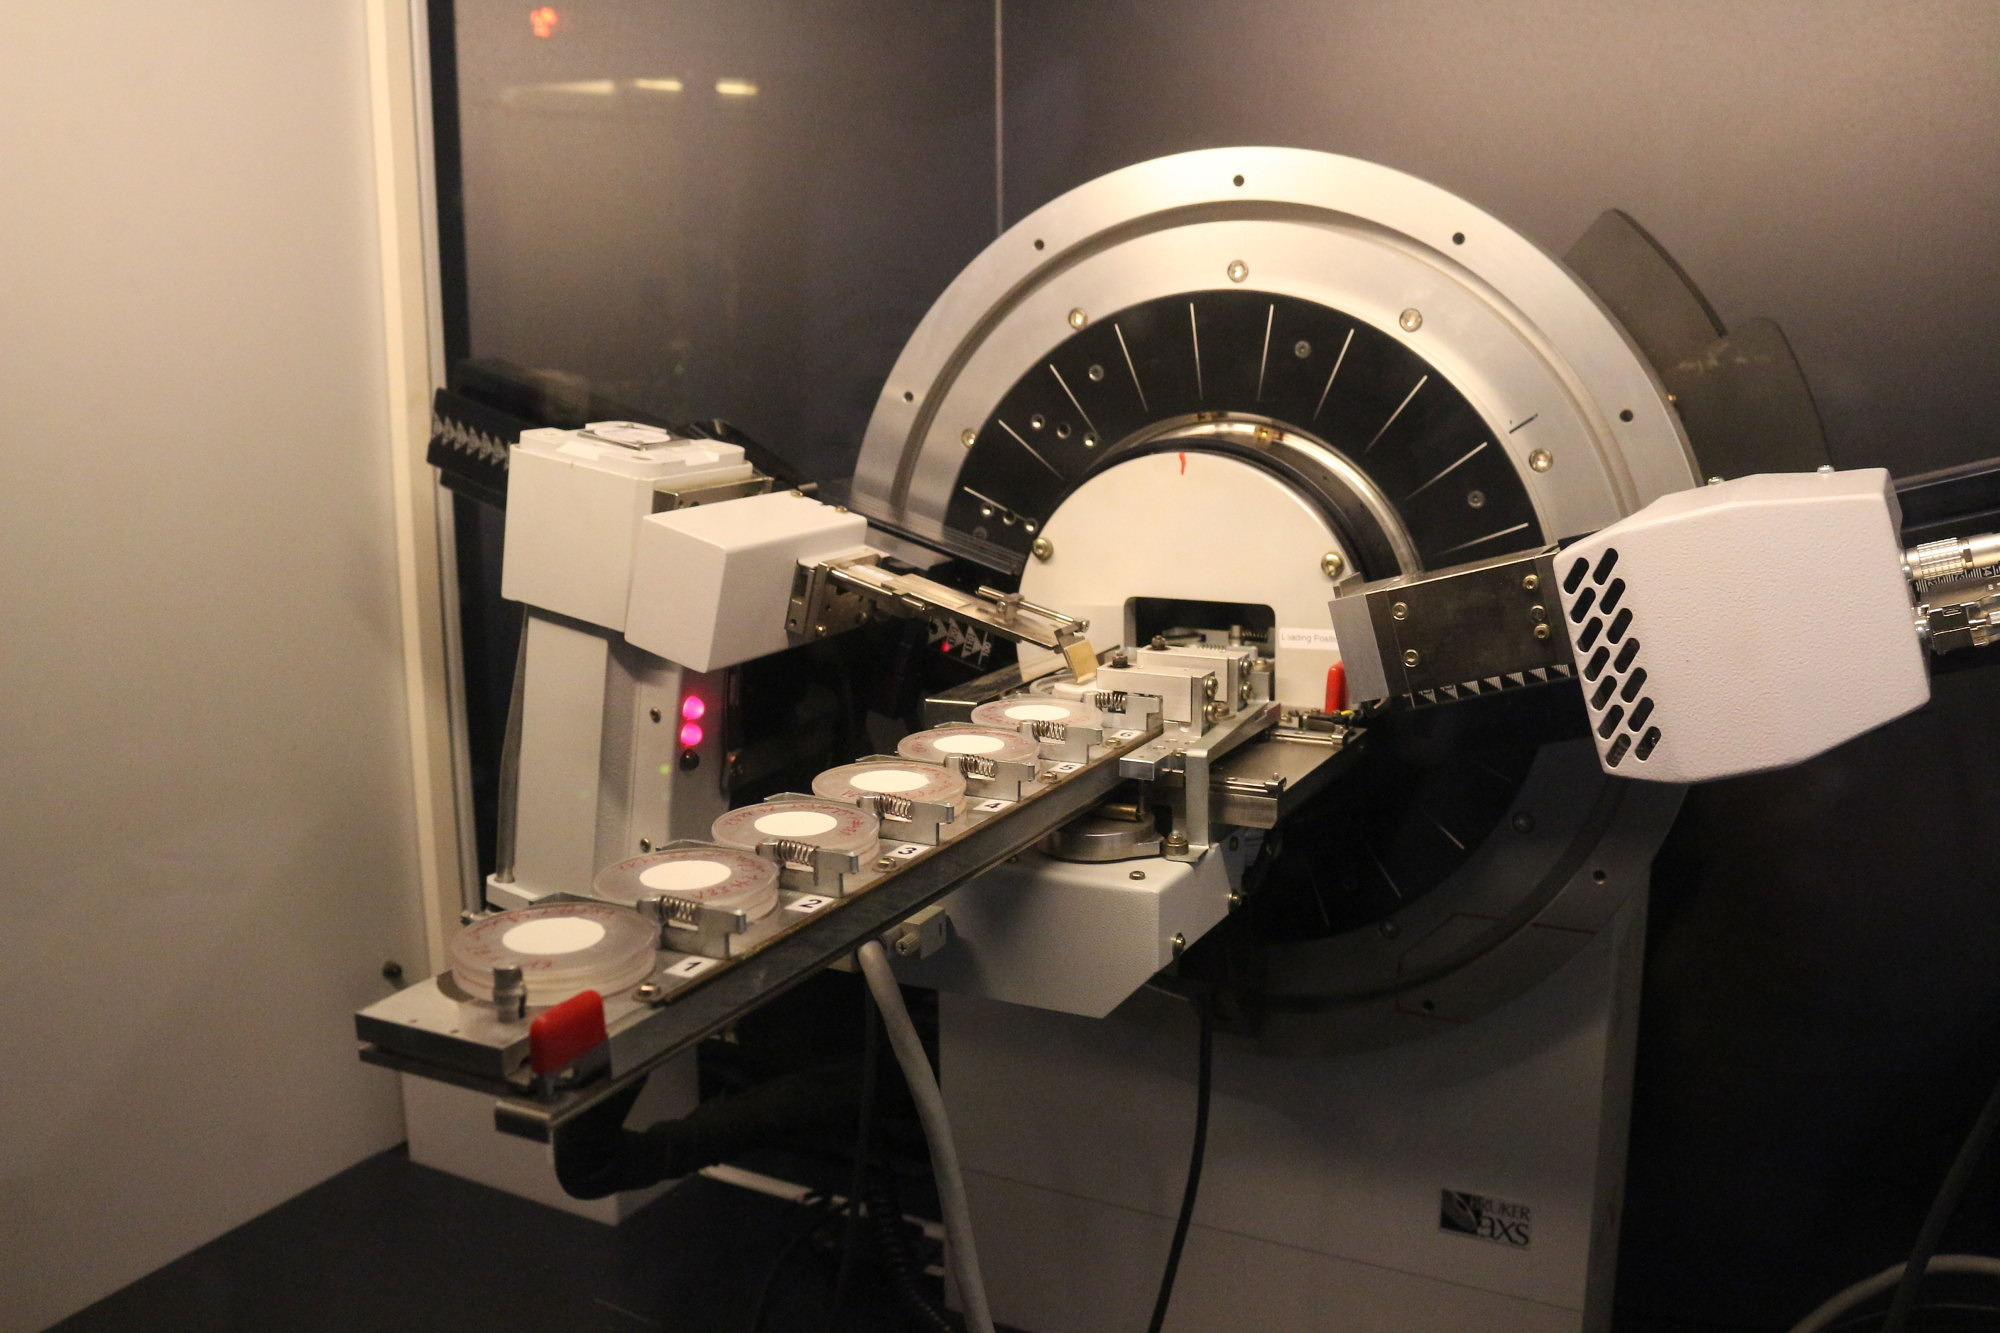 Bruker D8 with 9-fold sample changer equipped with LYNXEYE detector